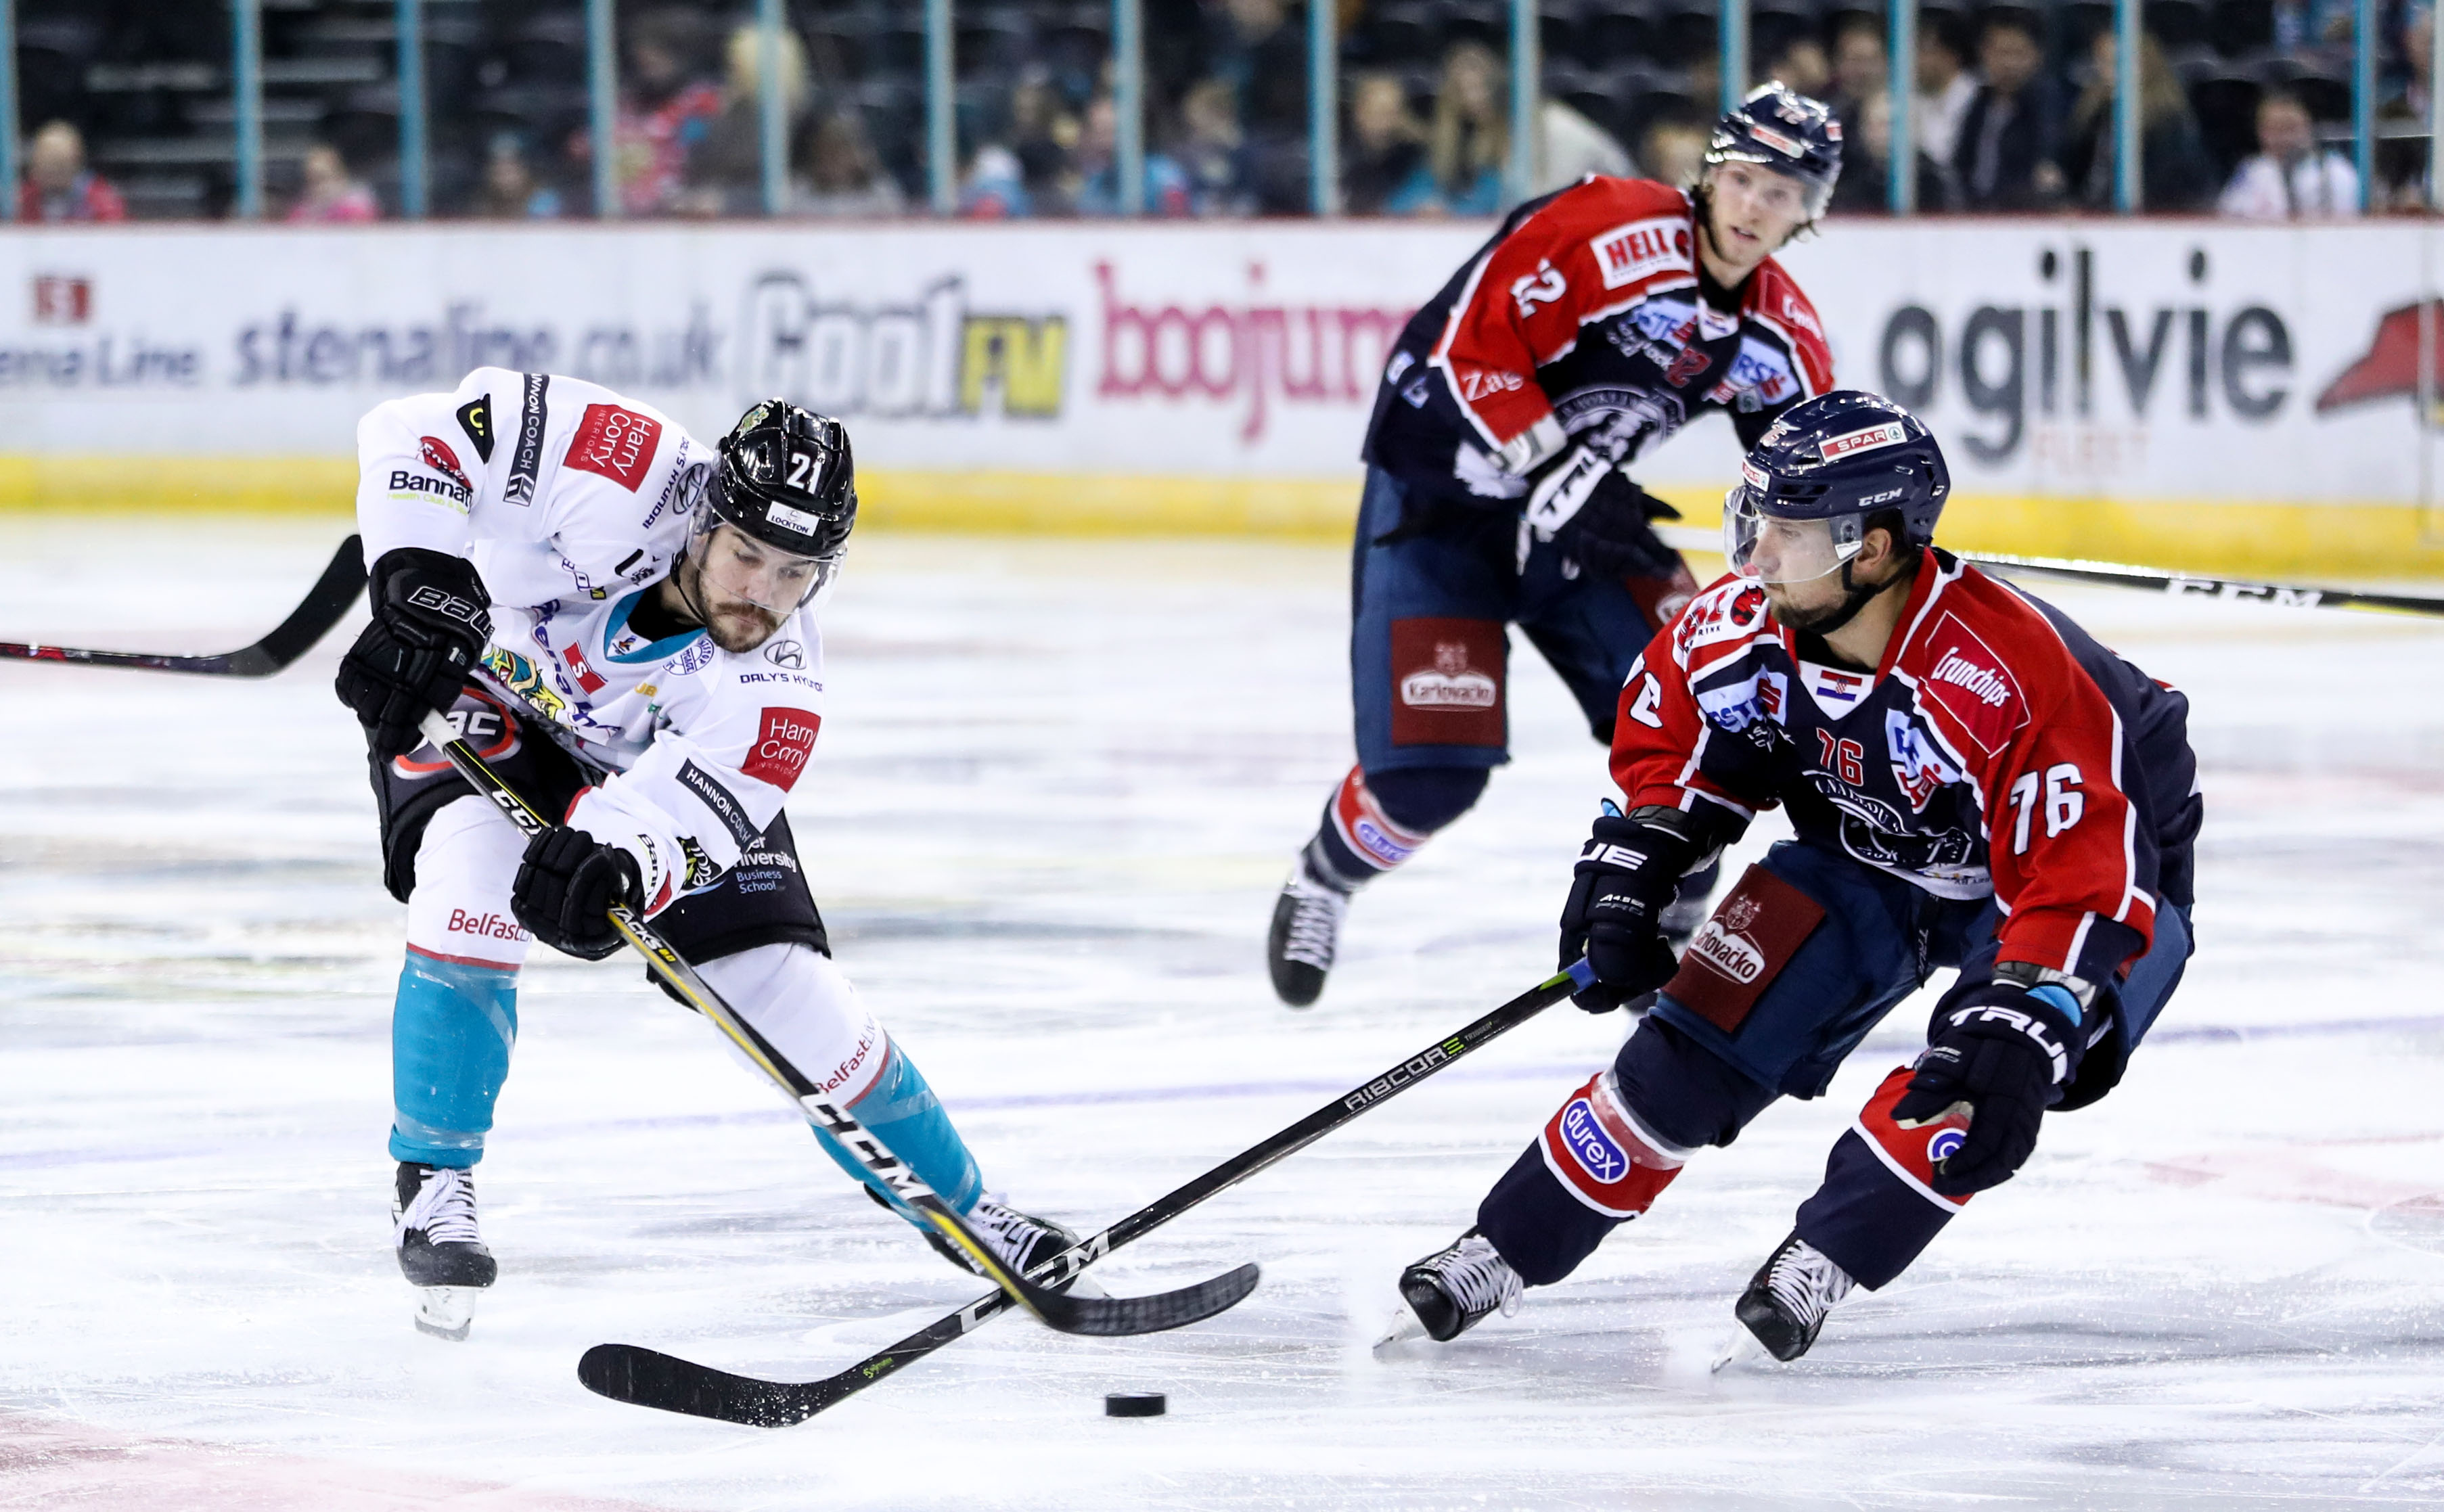 IIHF Continental Cup - Group E Belfast Giants vs Medvescak Zagreb